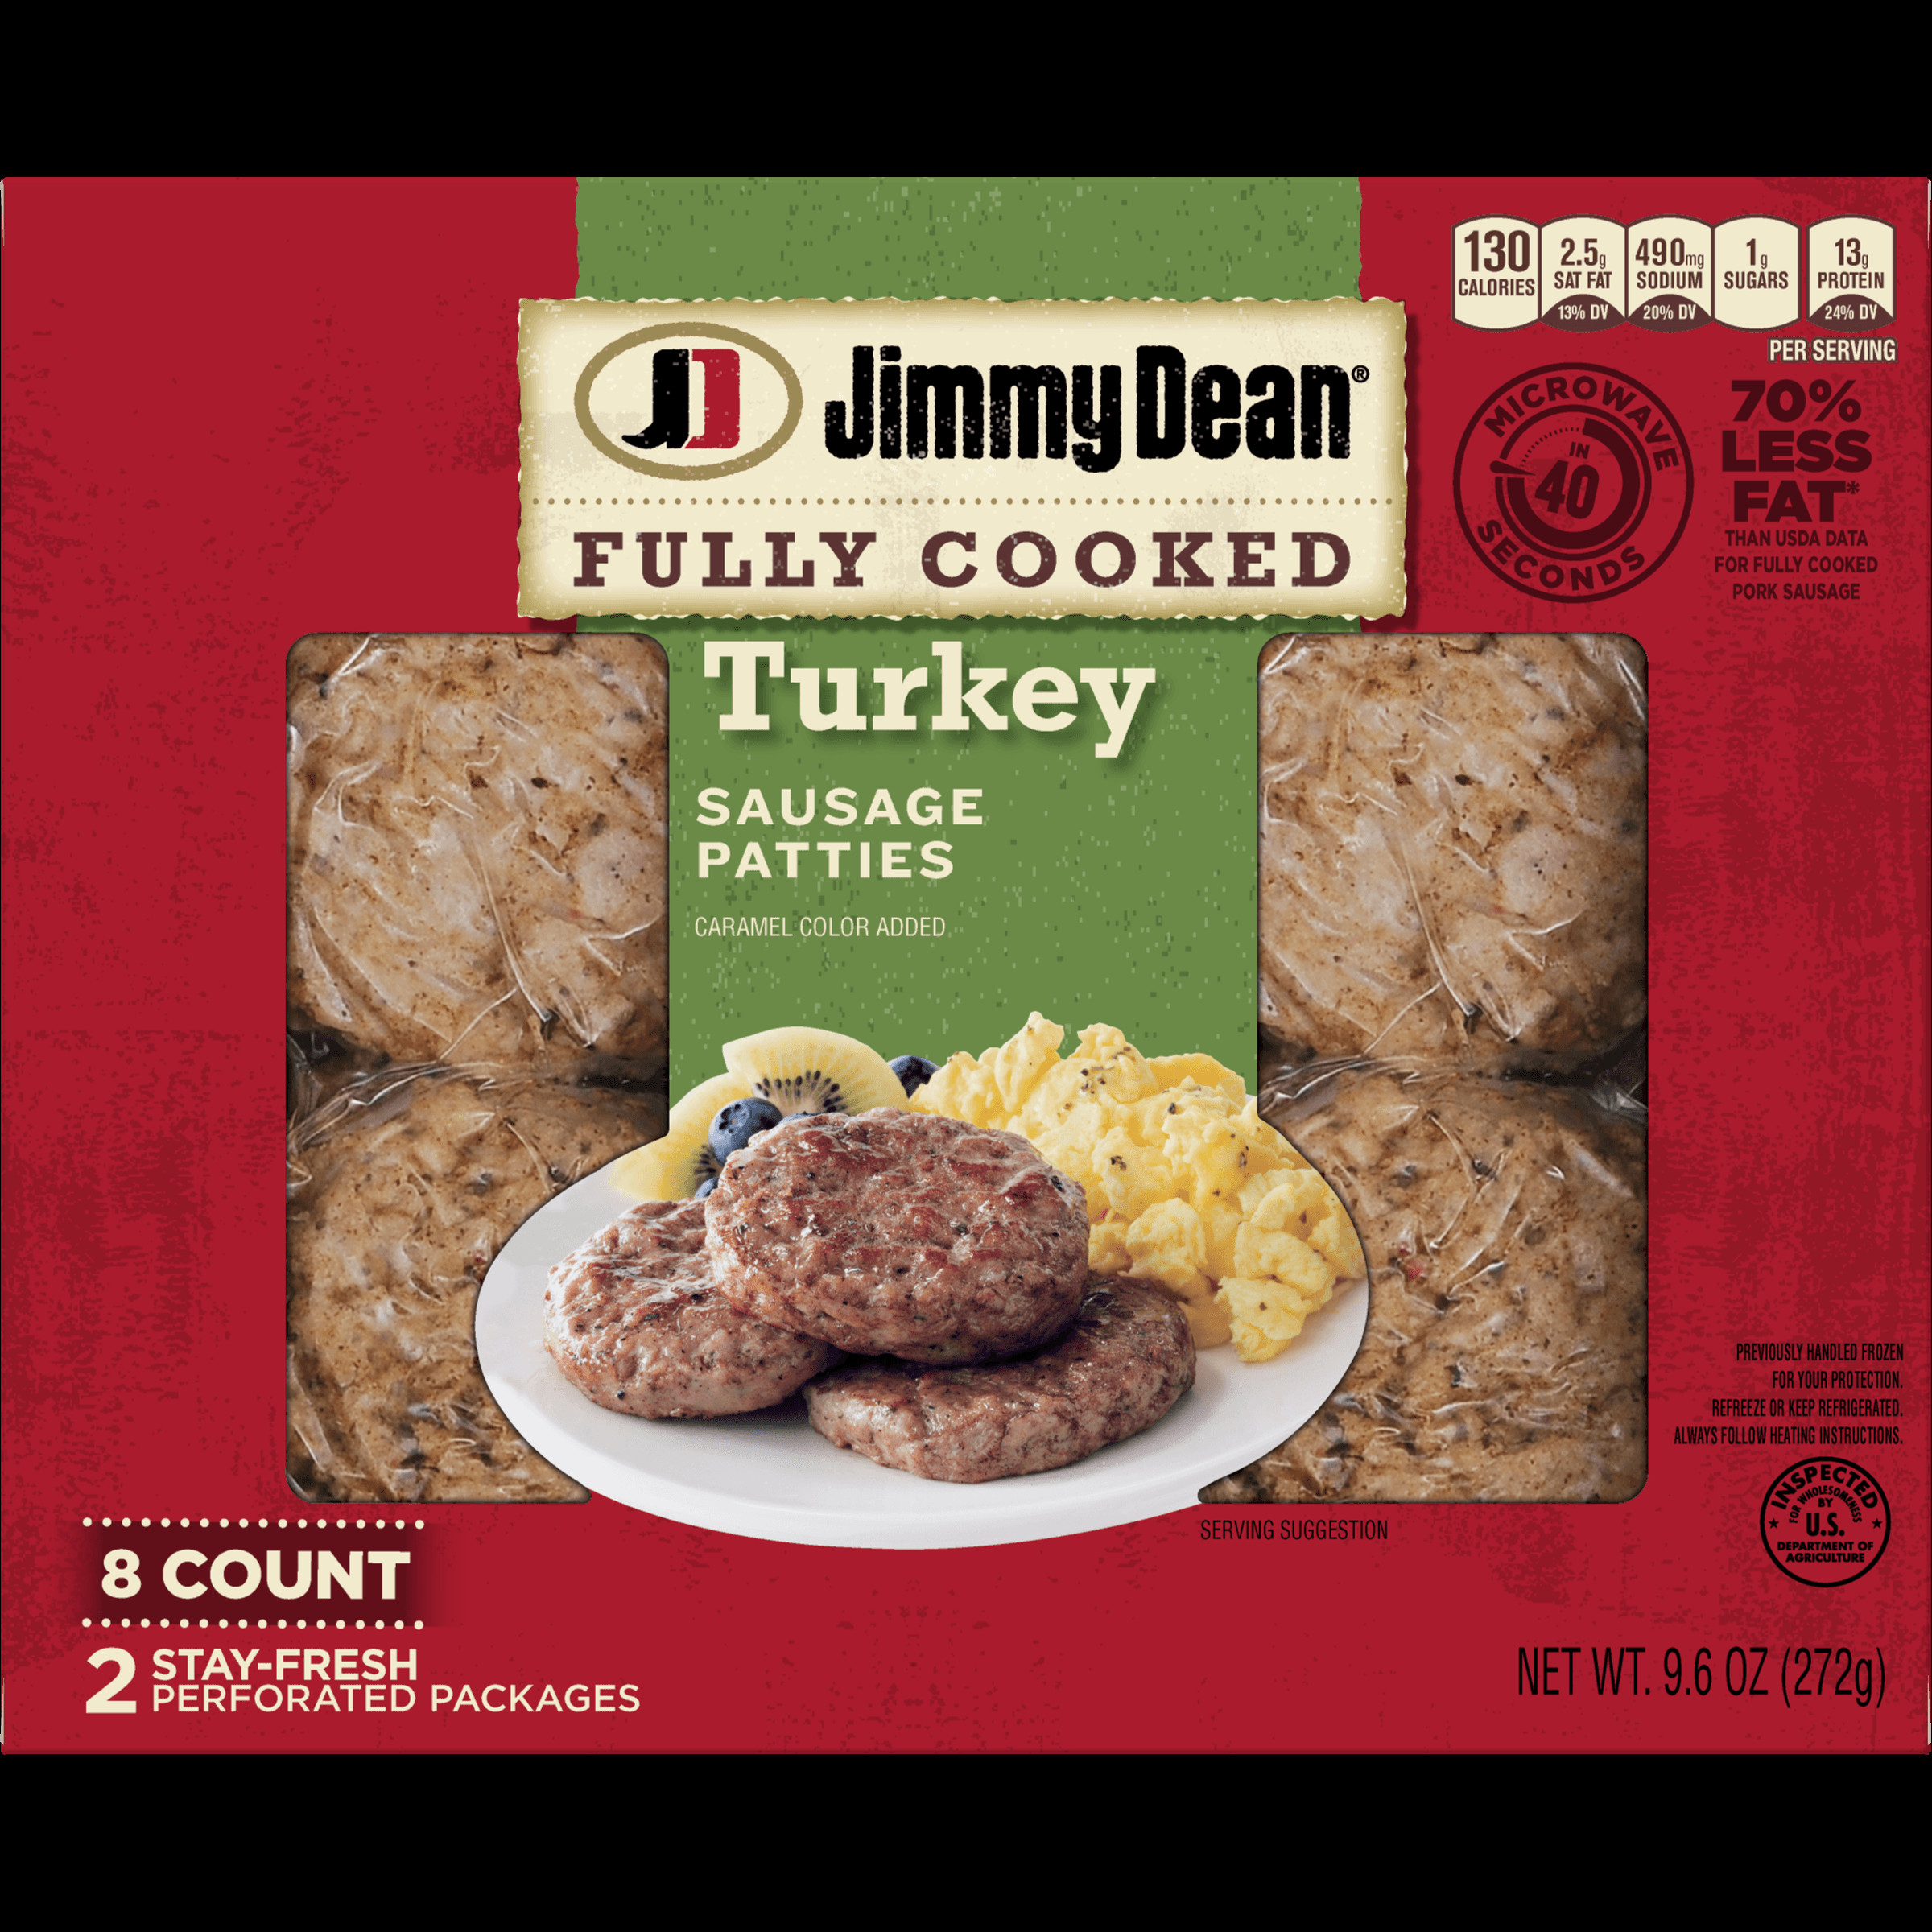 Pre Cooked Thanksgiving Dinner Walmart 2020  Jimmy Dean Fully Cooked Turkey Sausage Patties 8 Count